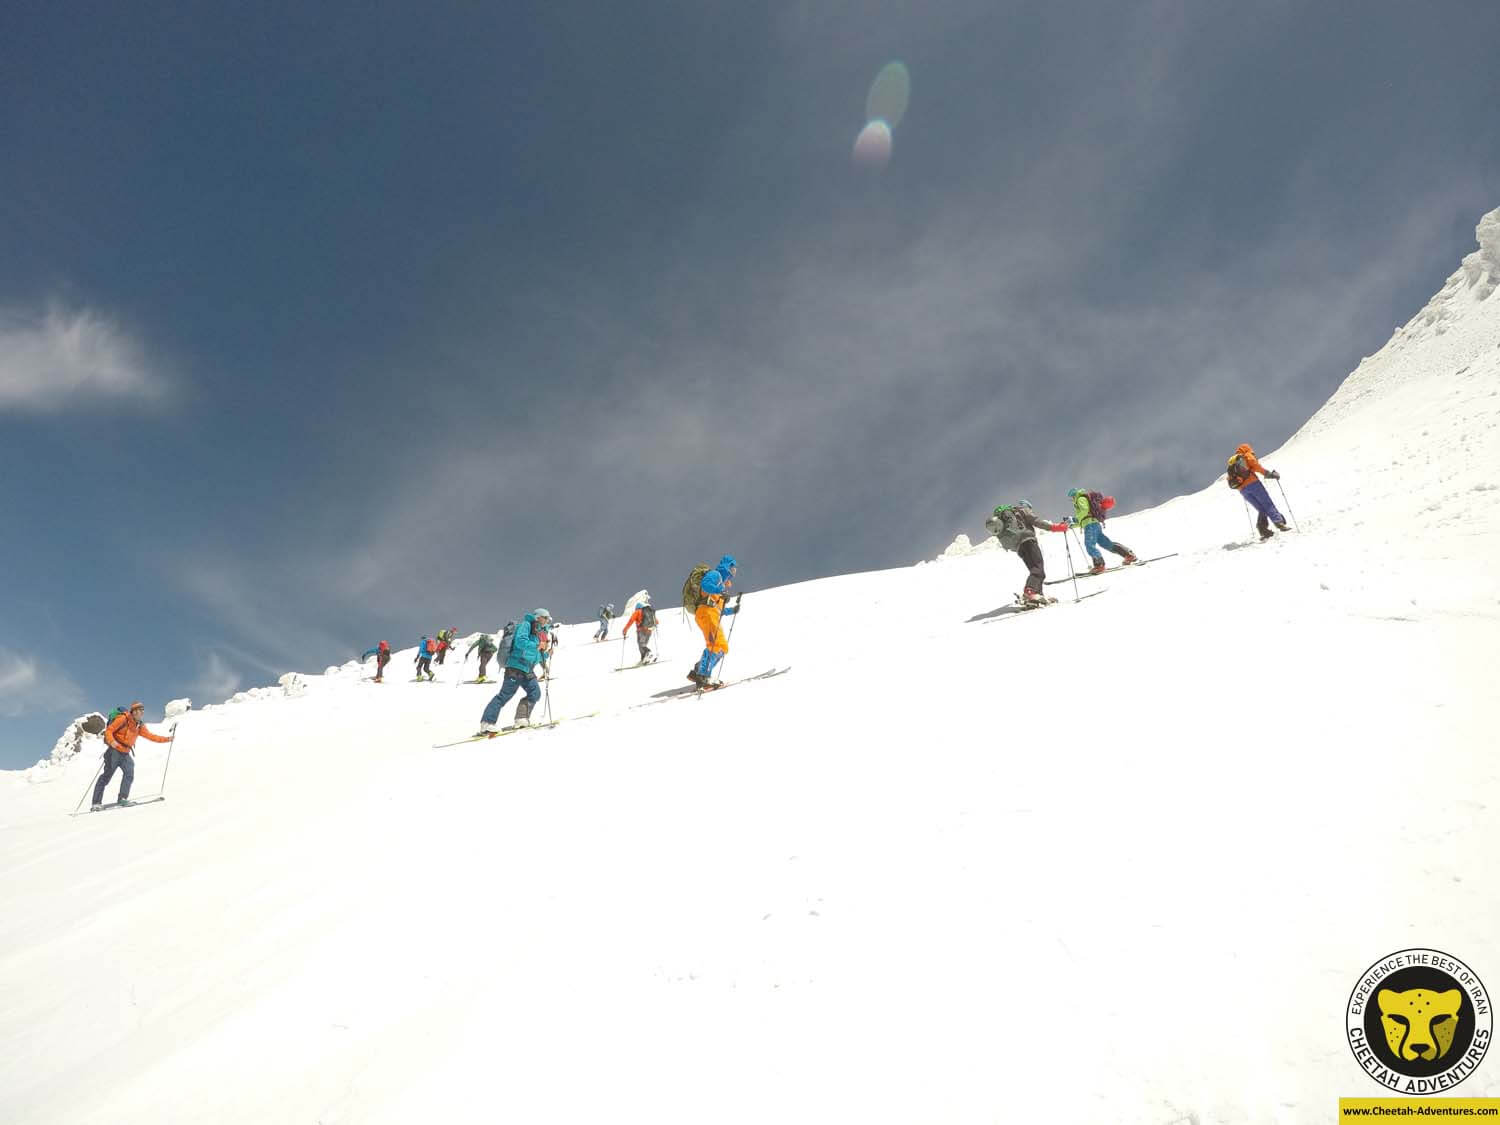 6-3 On the way to Damavand Summit at 5200m, Damavand Ski Touring travel iran tour package visit